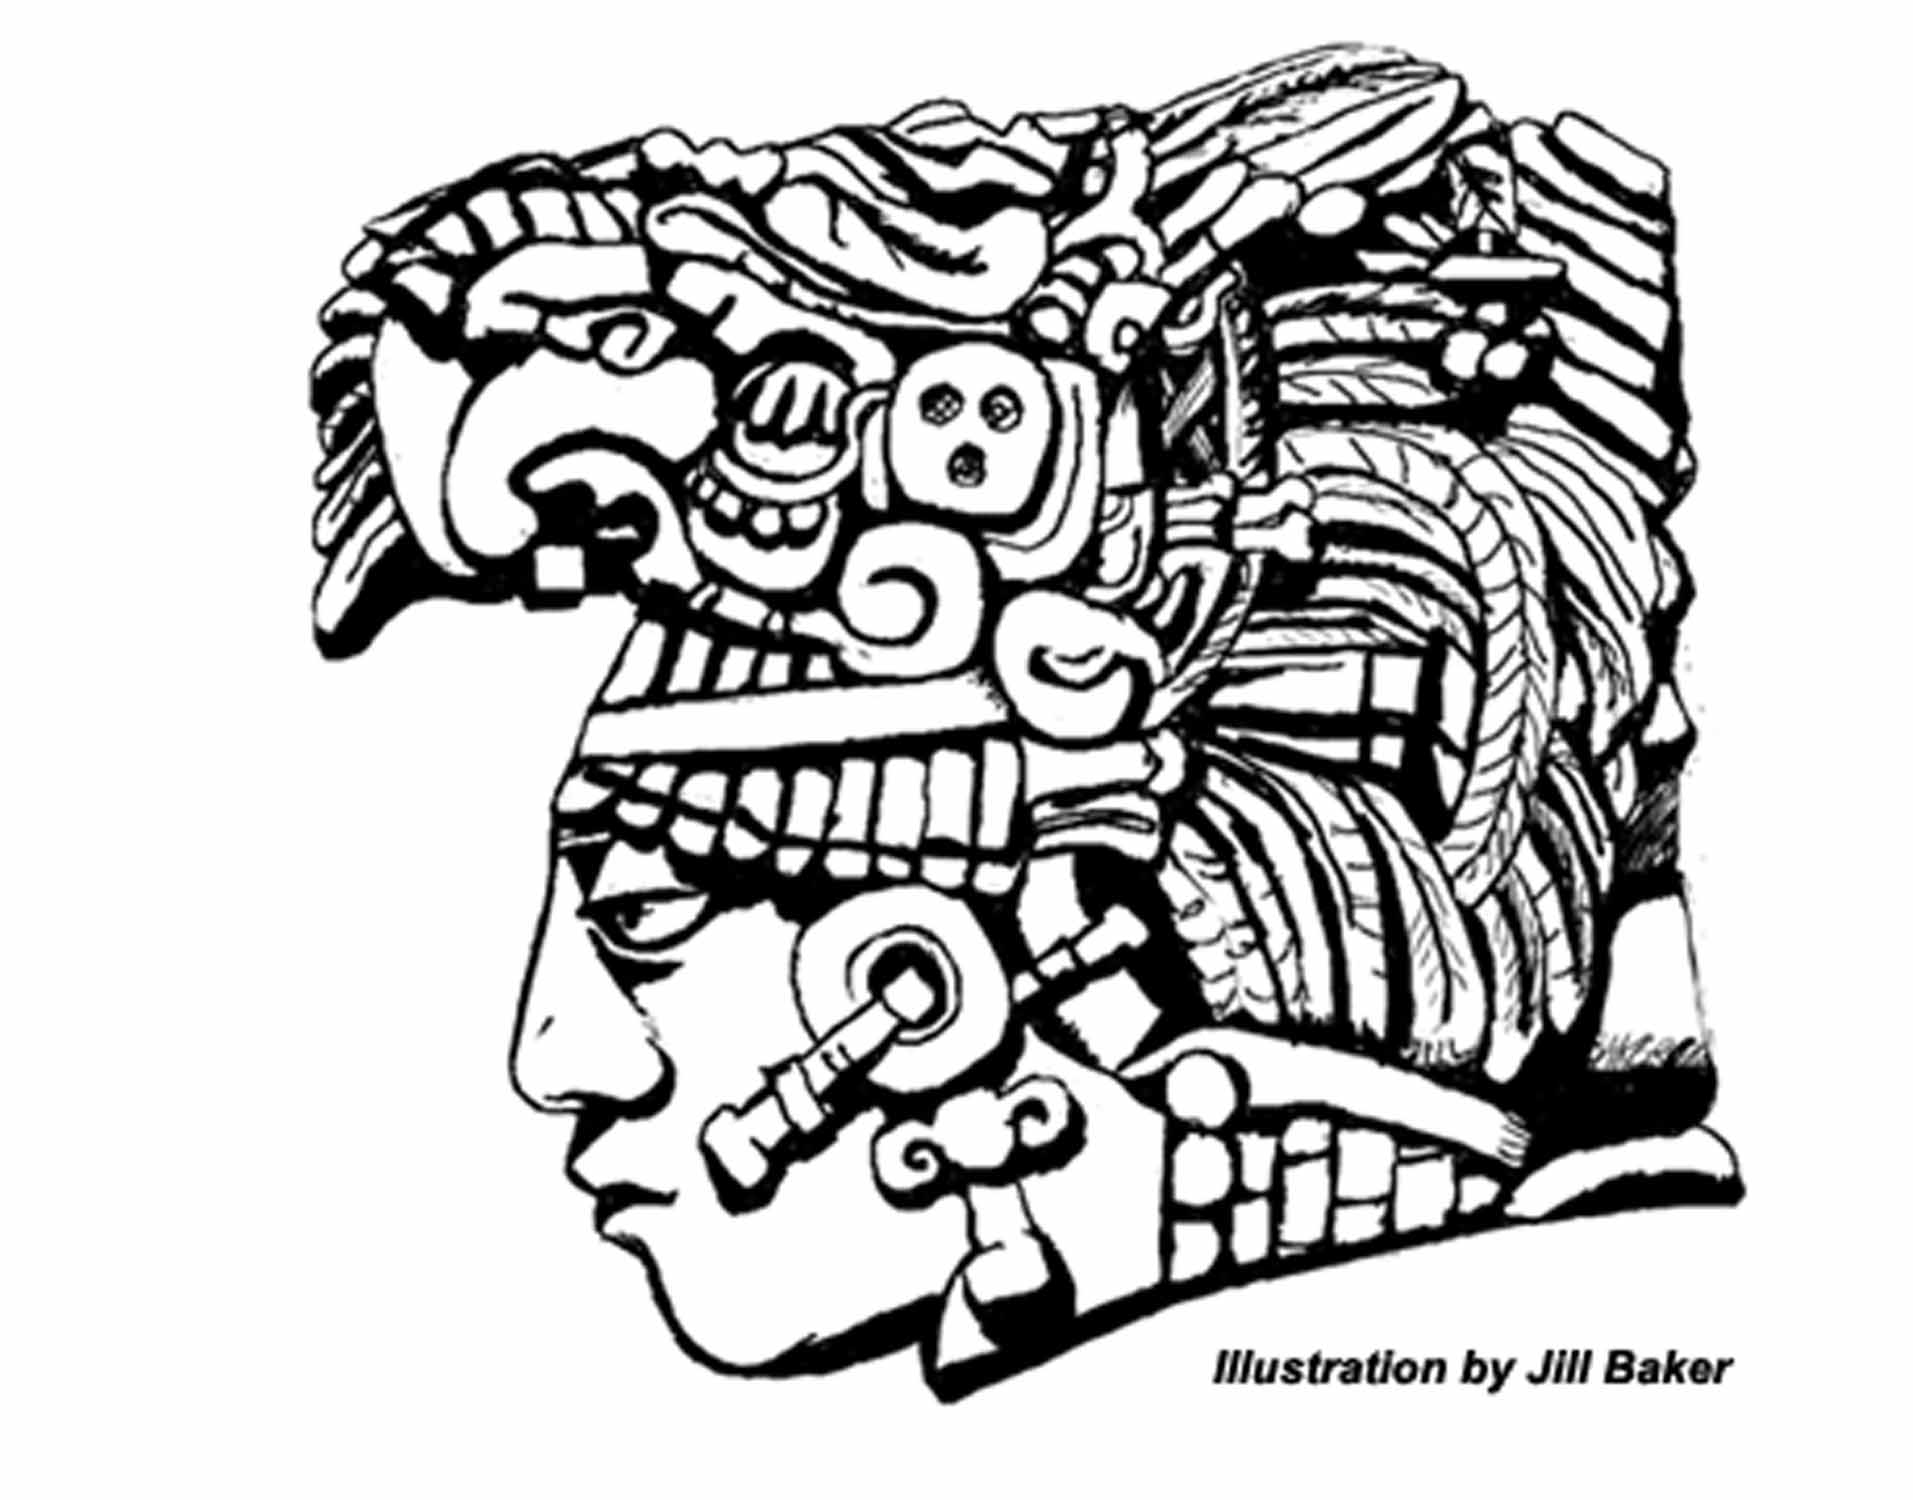 Mayan Calendar Drawing Easy : Mayan art on pinterest maya palenque and tikal